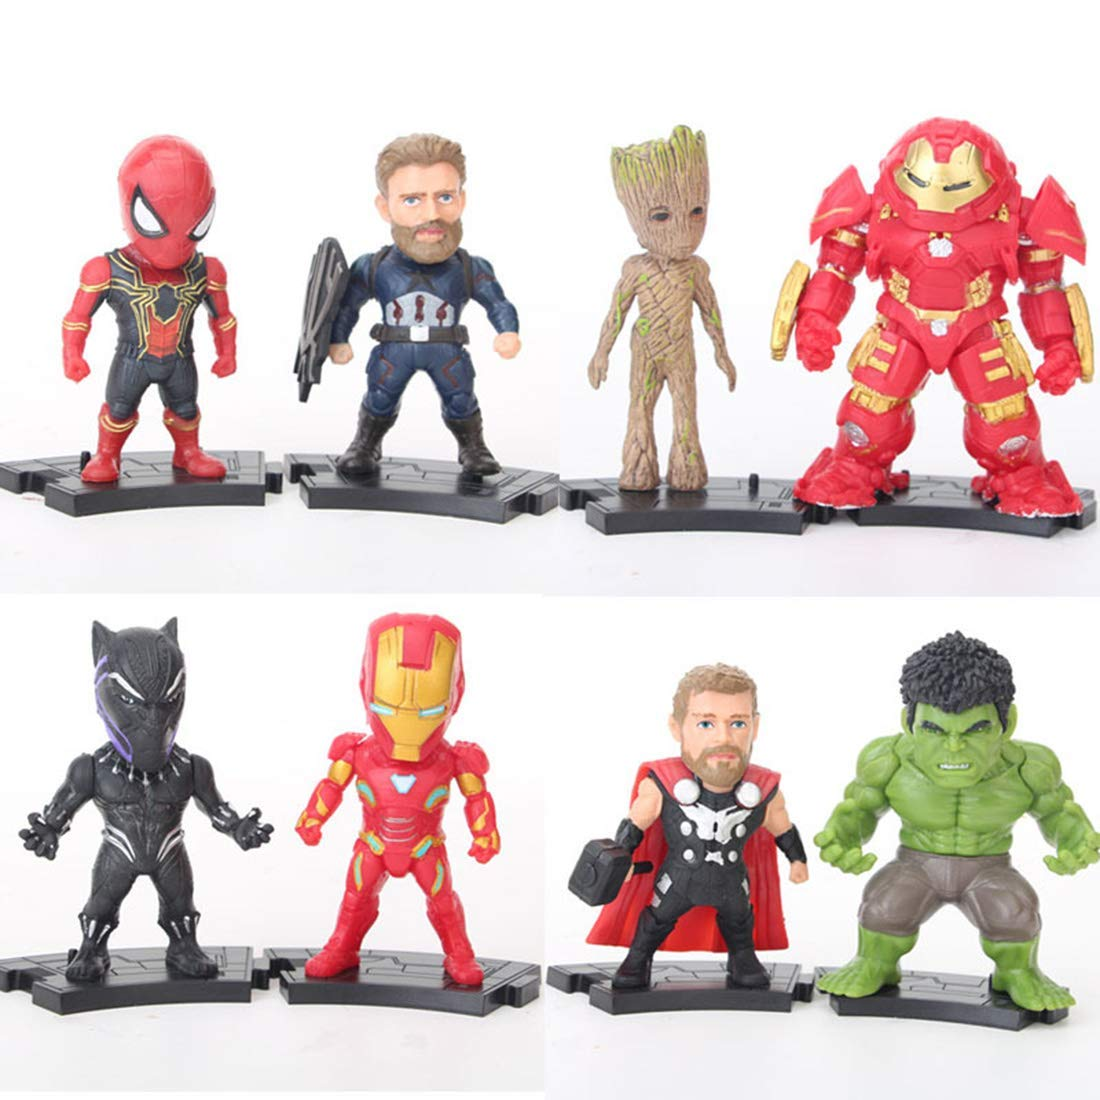 AVHERO Avengers Ultimate Super Hero Action Figures 8 Pcs Set Figures from  Infinity War Toys